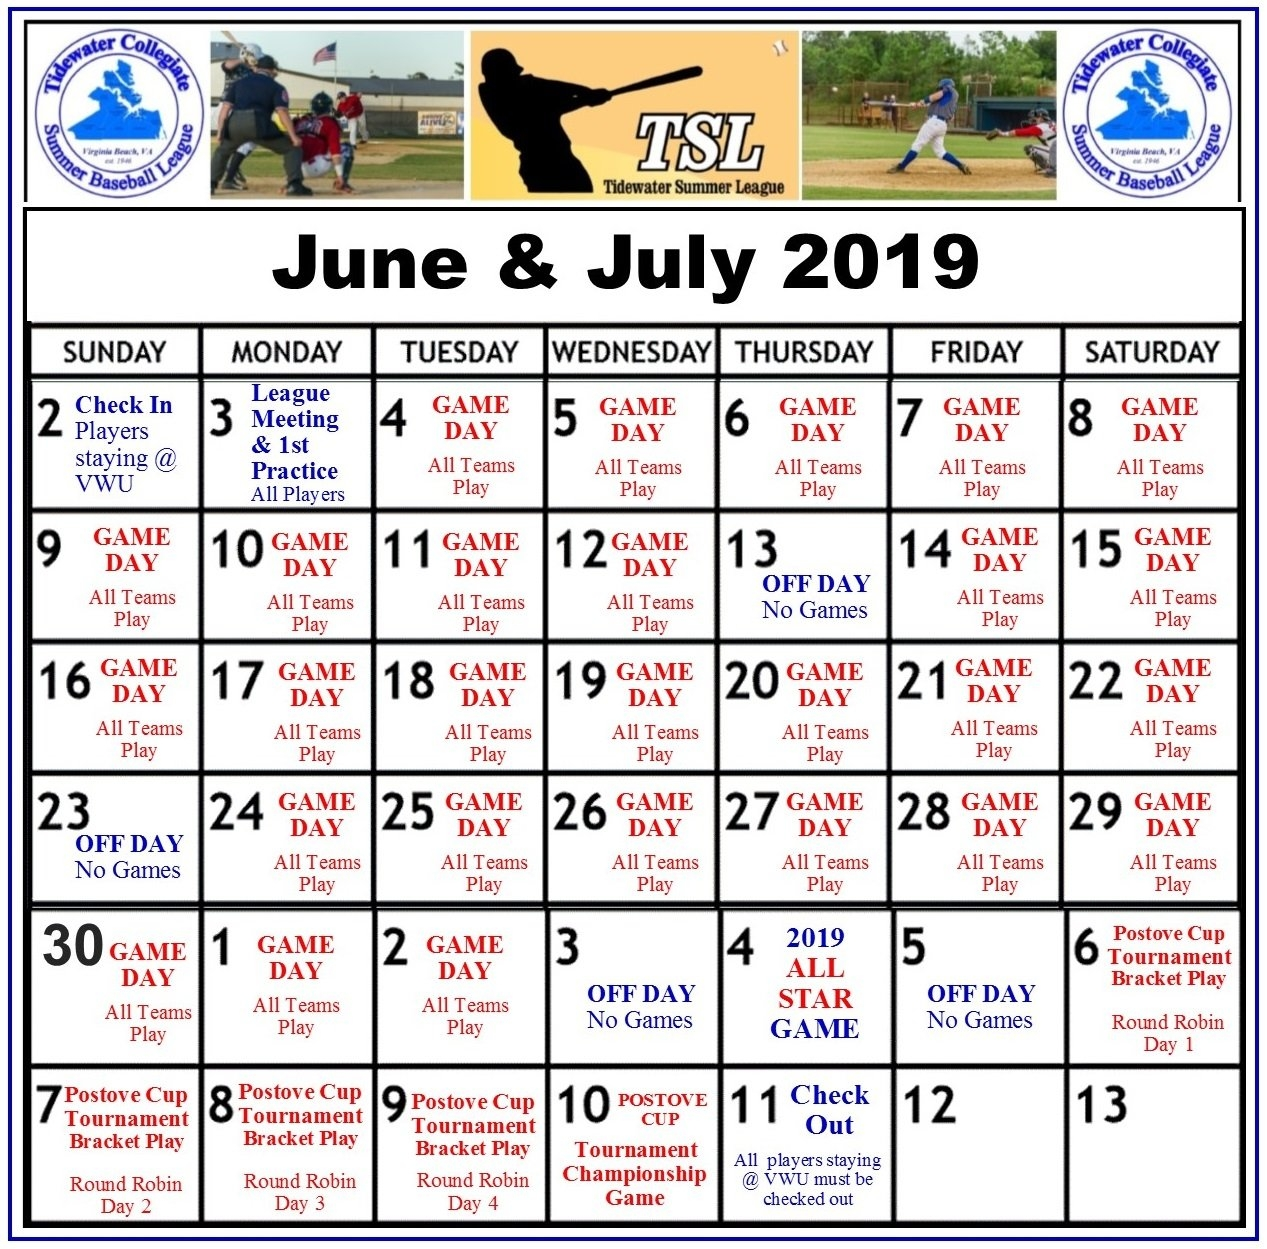 Summer 2019 Calendar Update 8.17.18 | Tidewater Summer League Calendar 2019 Summer